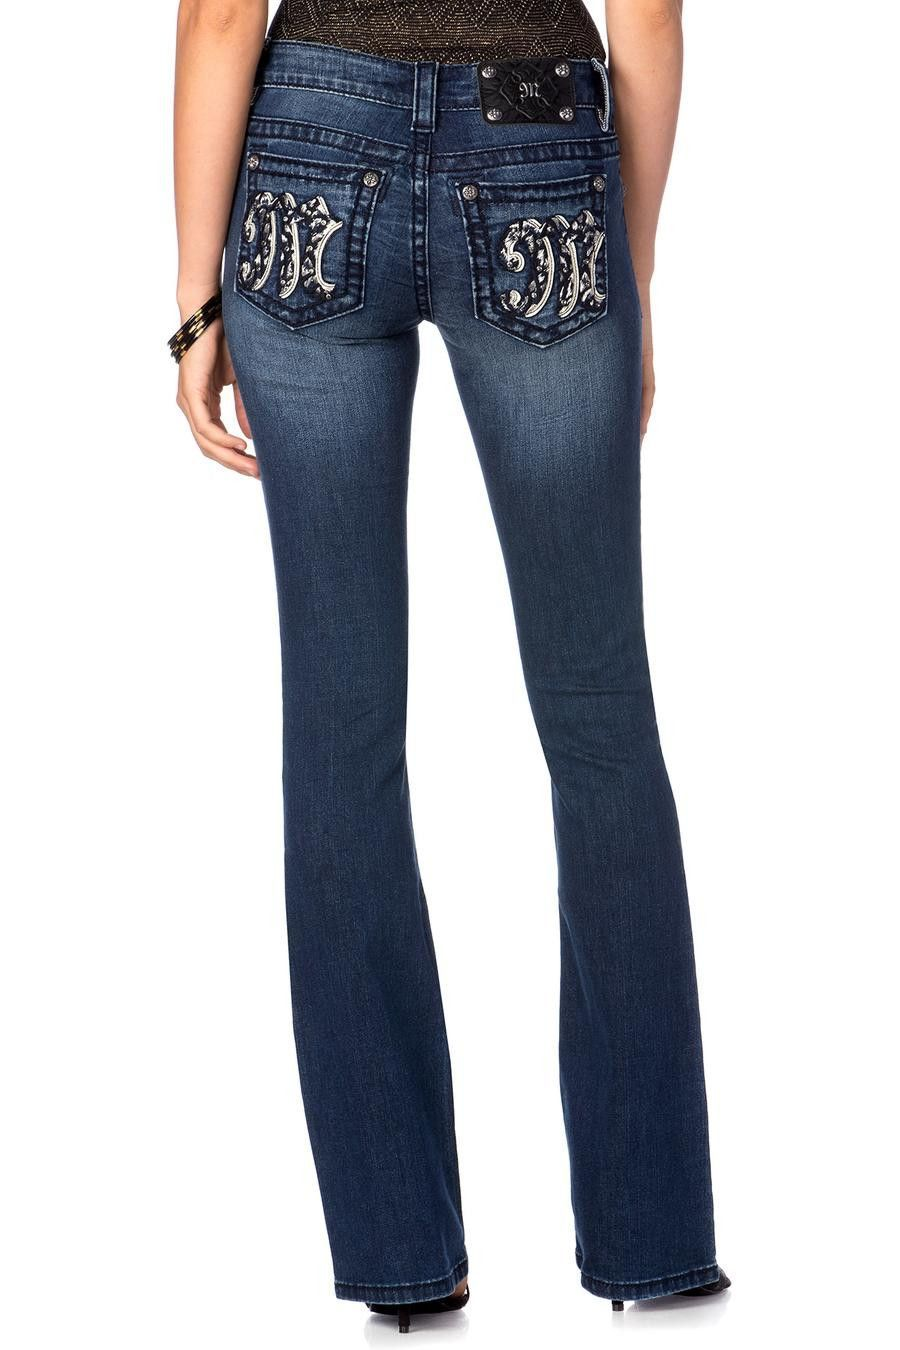 8ce85a38c80 Midrise medium-dark wash boot cut jean with fading and whiskering. Back  pockets feature an embellished M logo. Jean is detailed with large crystal  rivet.